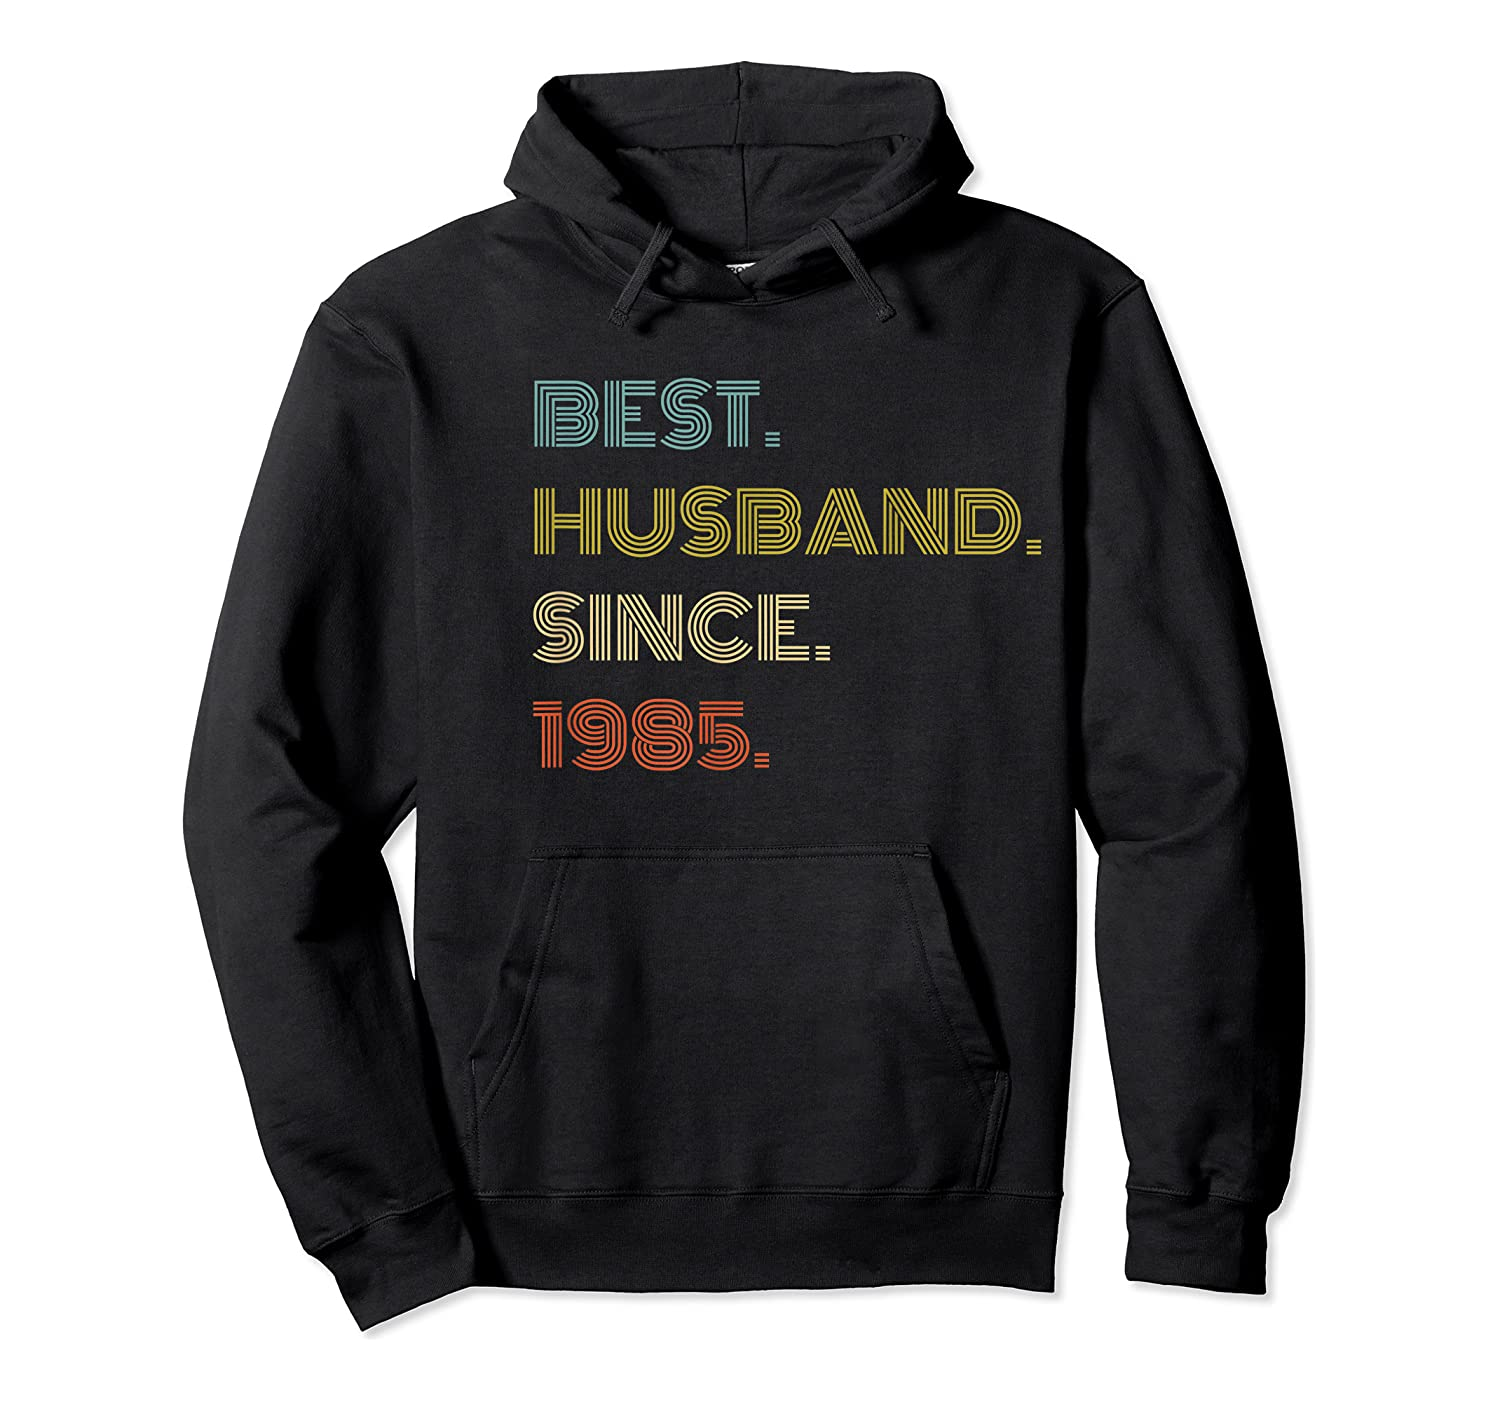 S 35th Wedding Anniversary Gift Best Husband Since 1985 T-shirt Unisex Pullover Hoodie